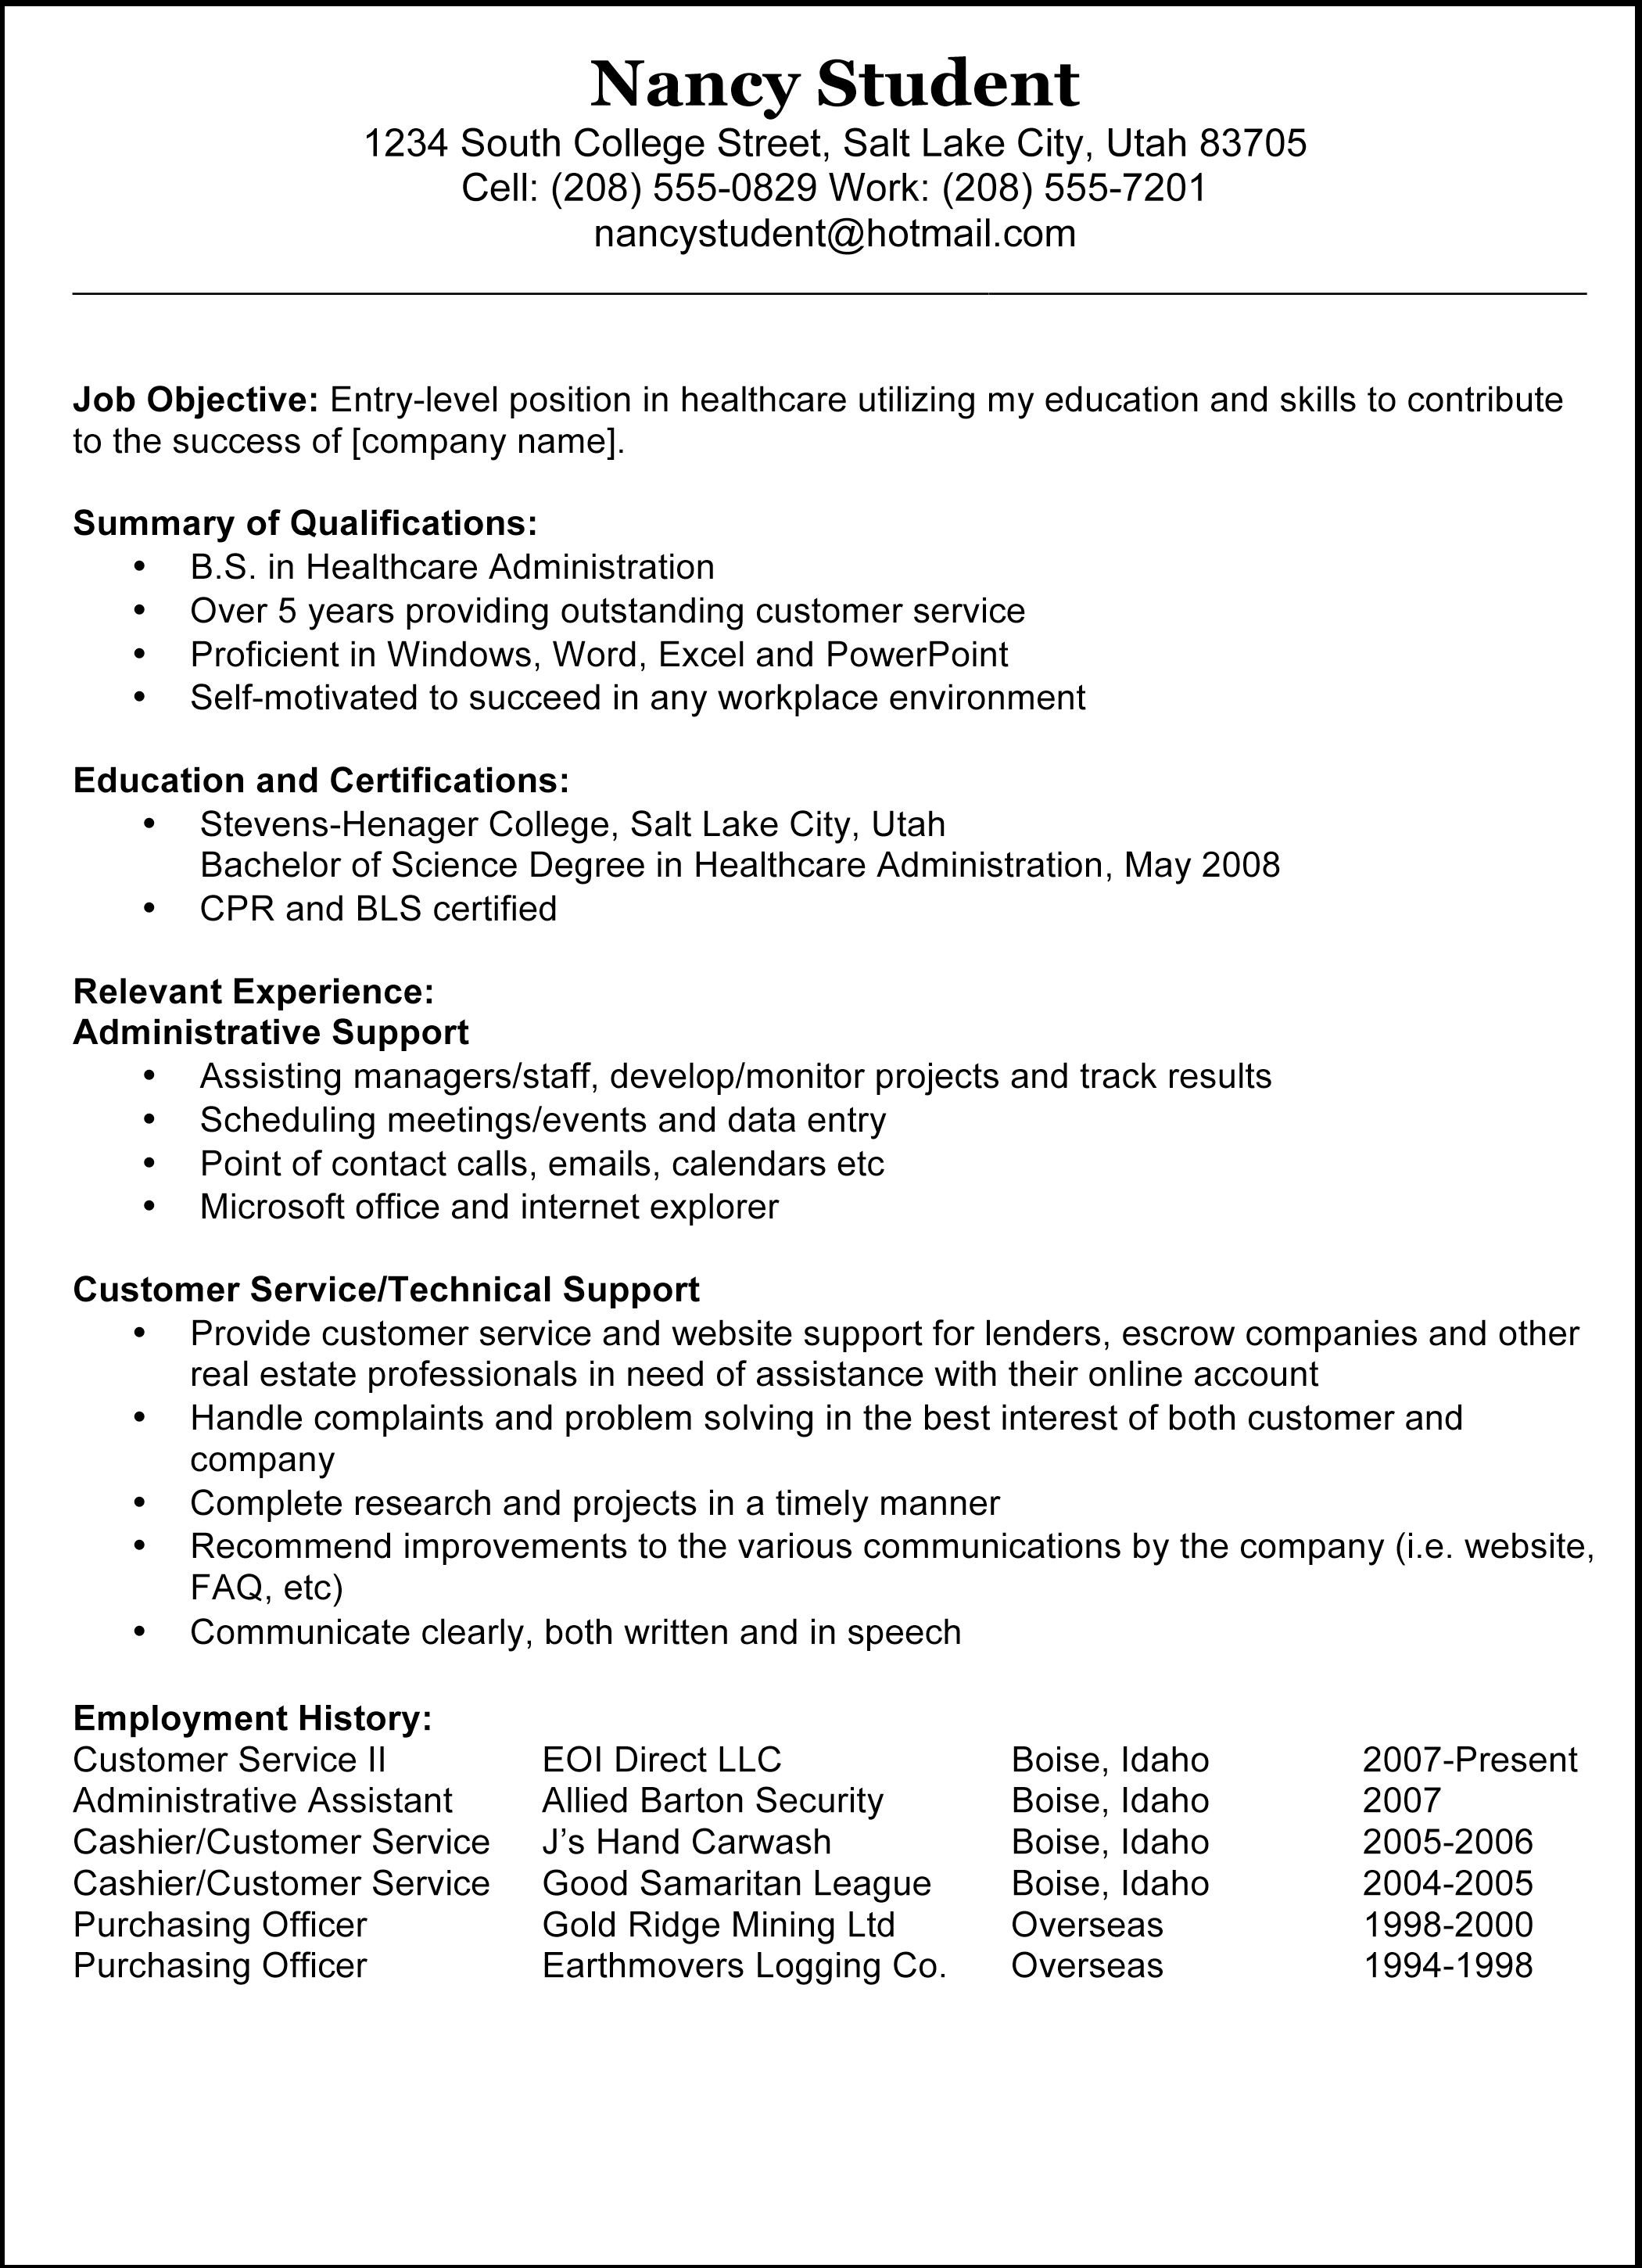 Resume Experience Example Copy Of 2014 Resume Sample  Click On The Document For An Editable